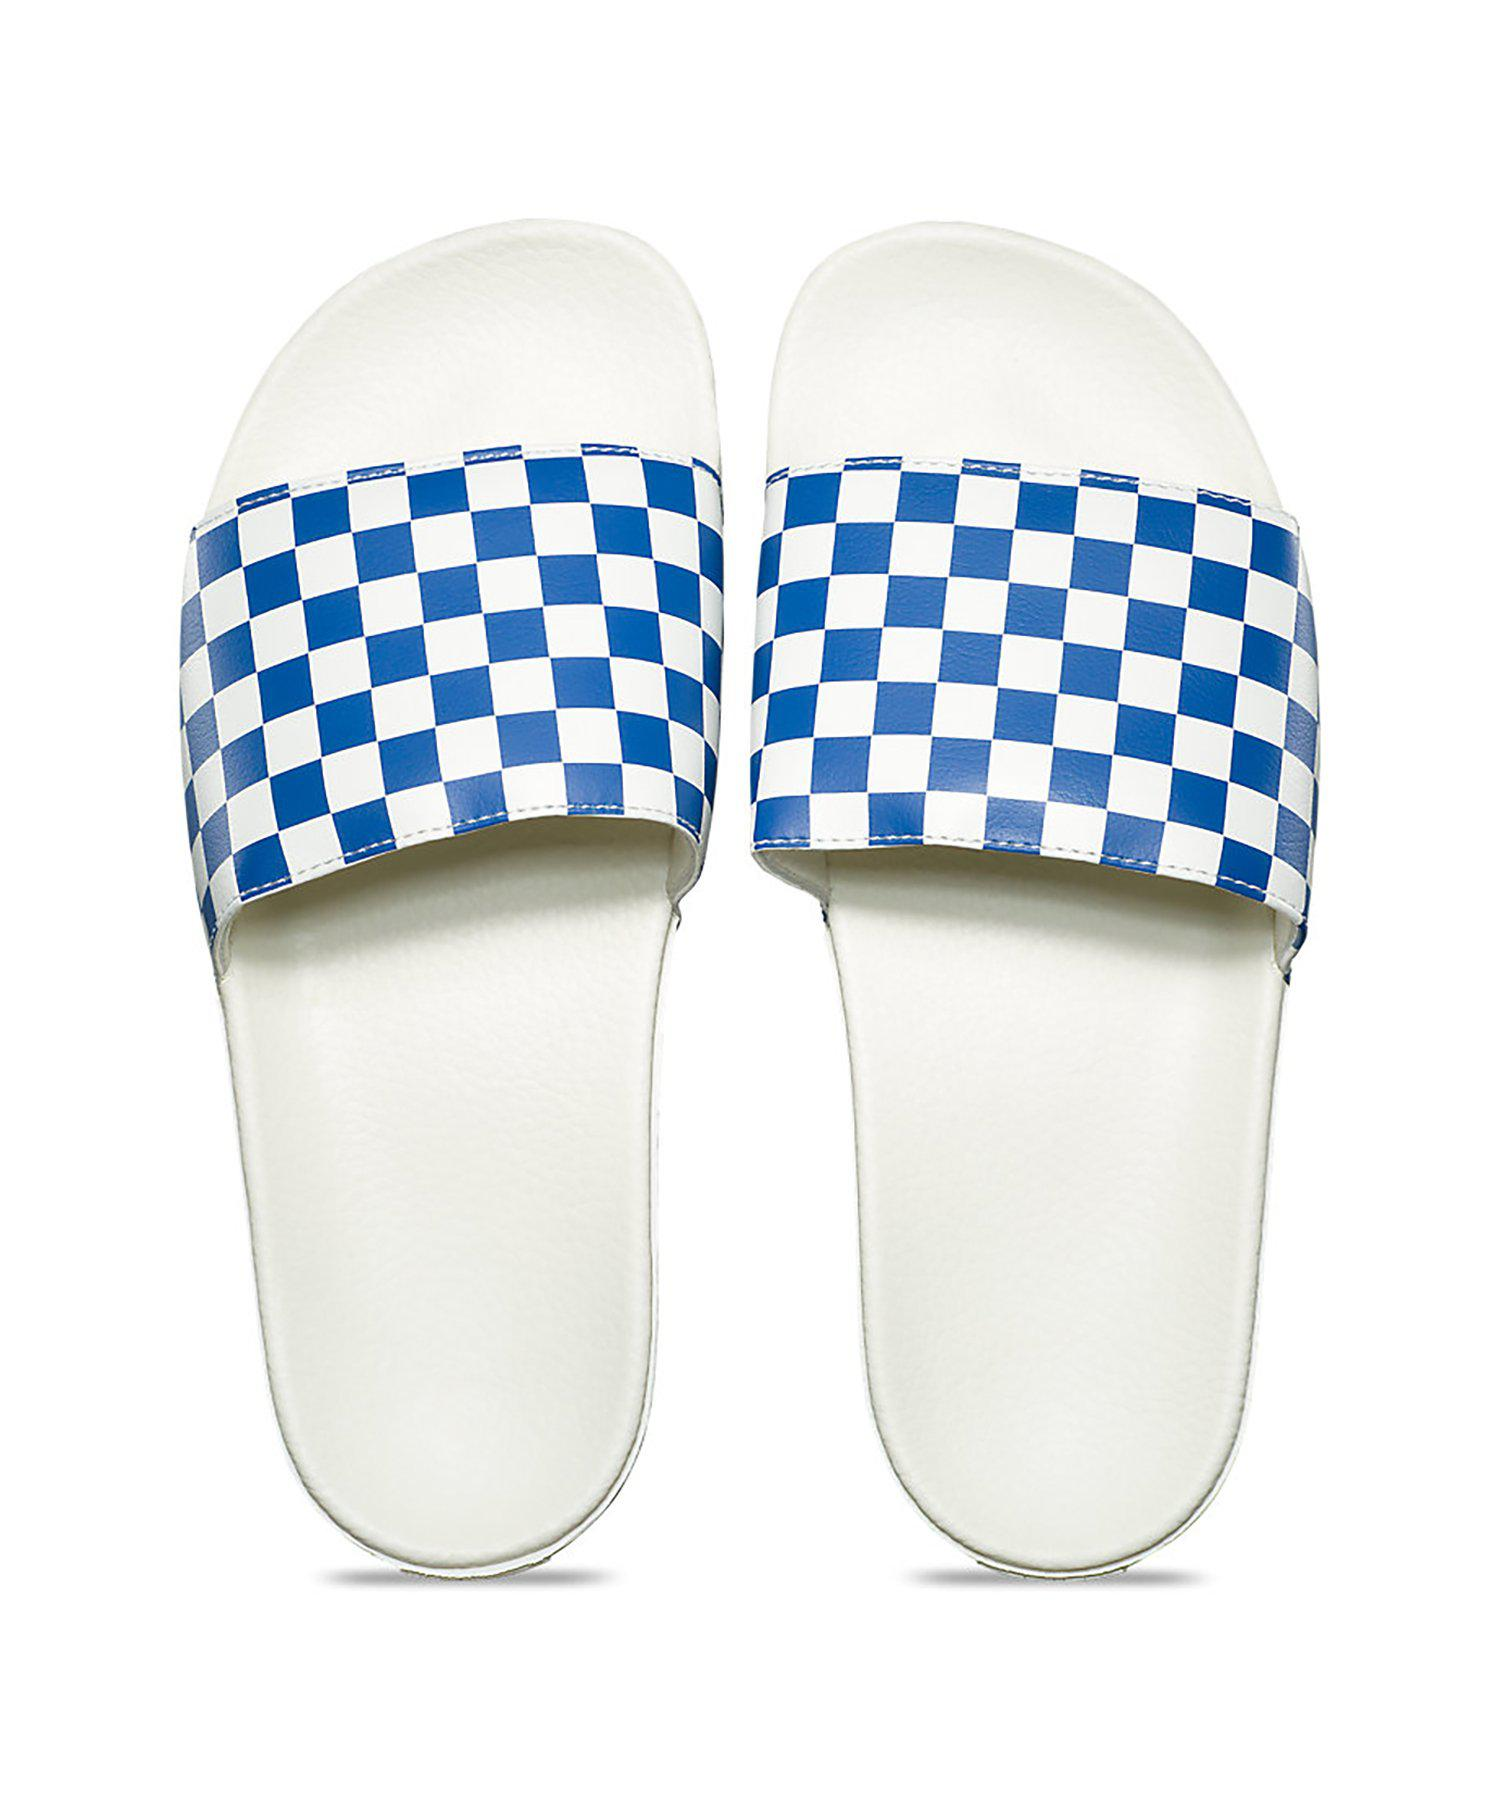 Vans Synthetic Checkerboard Slide-on